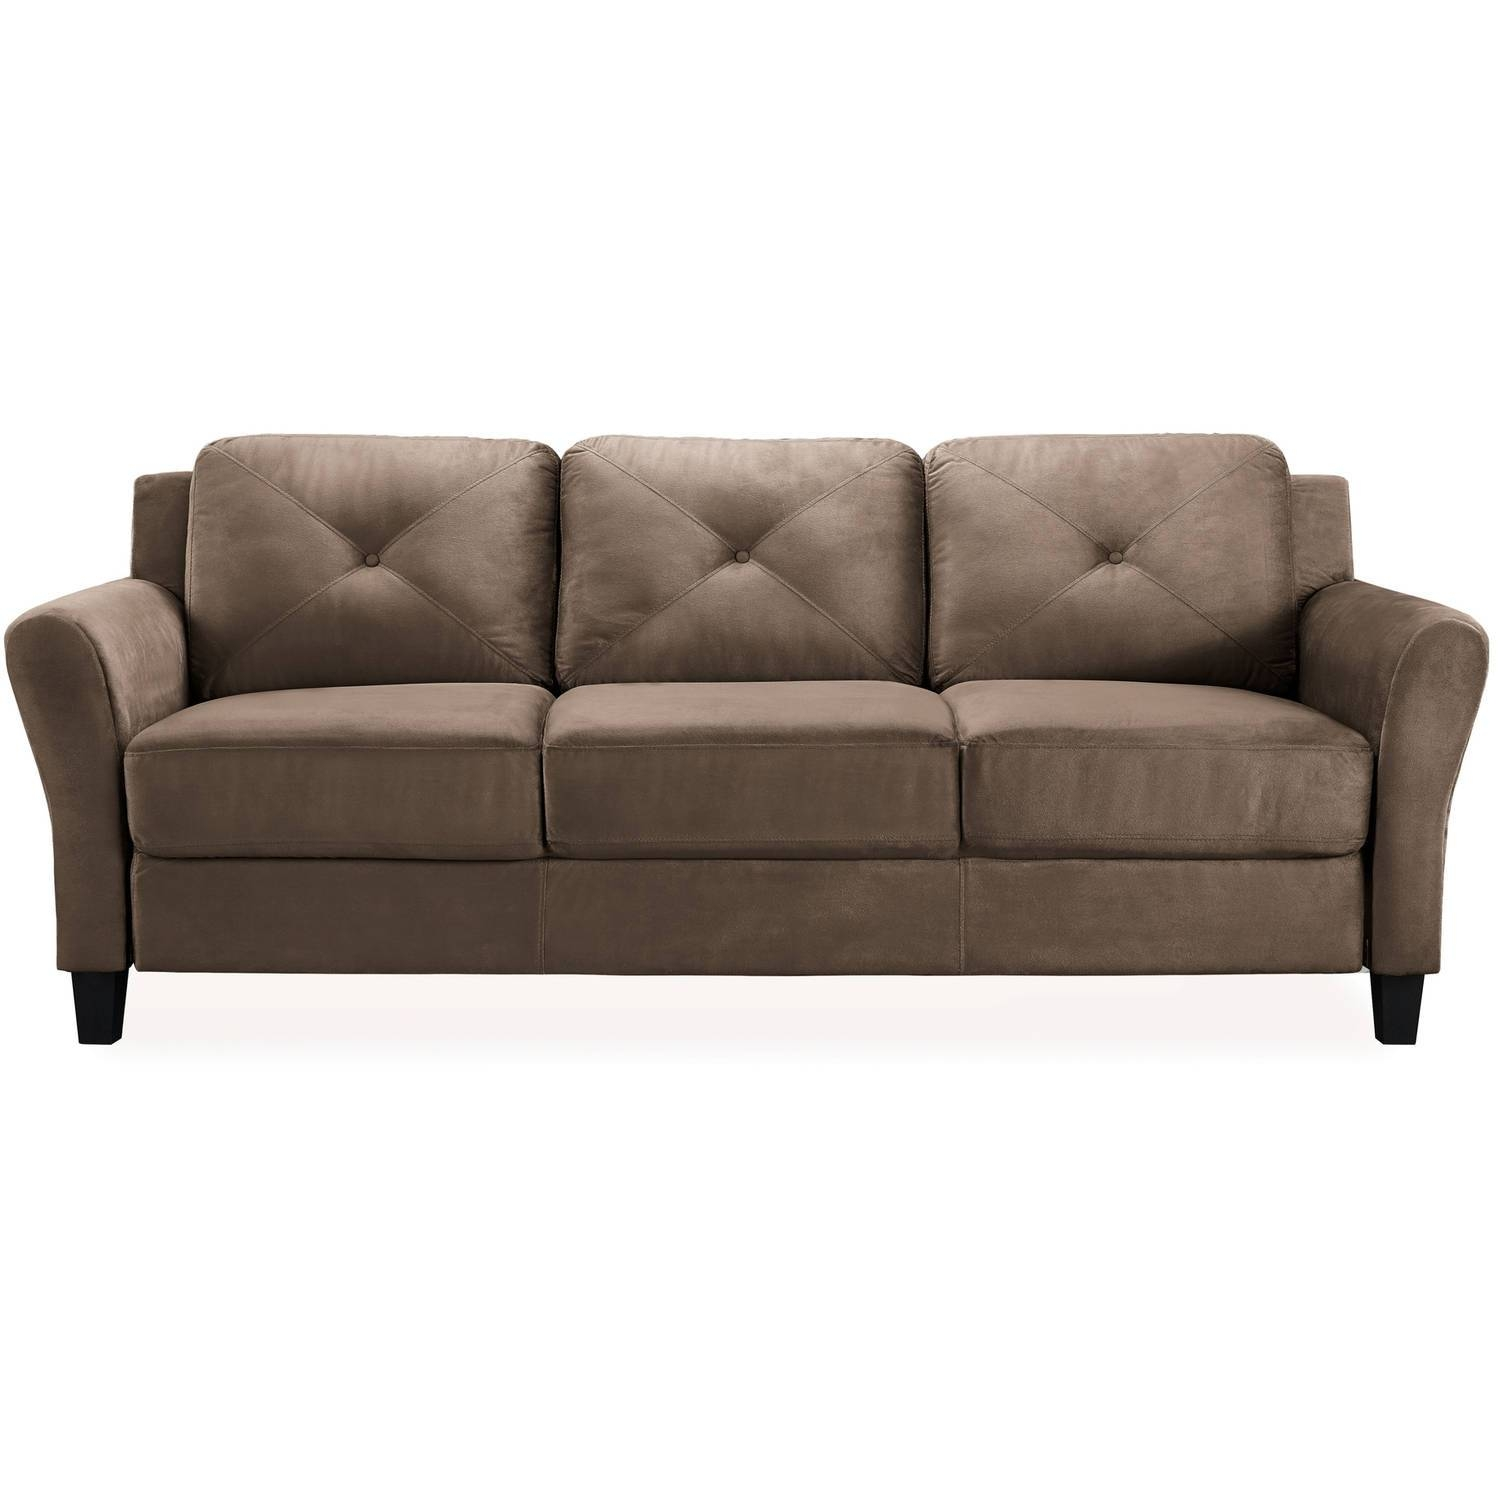 Taryn Rolled-Arm Sofa, Brown - Walmart throughout Green Microfiber Sofas (Image 15 of 15)